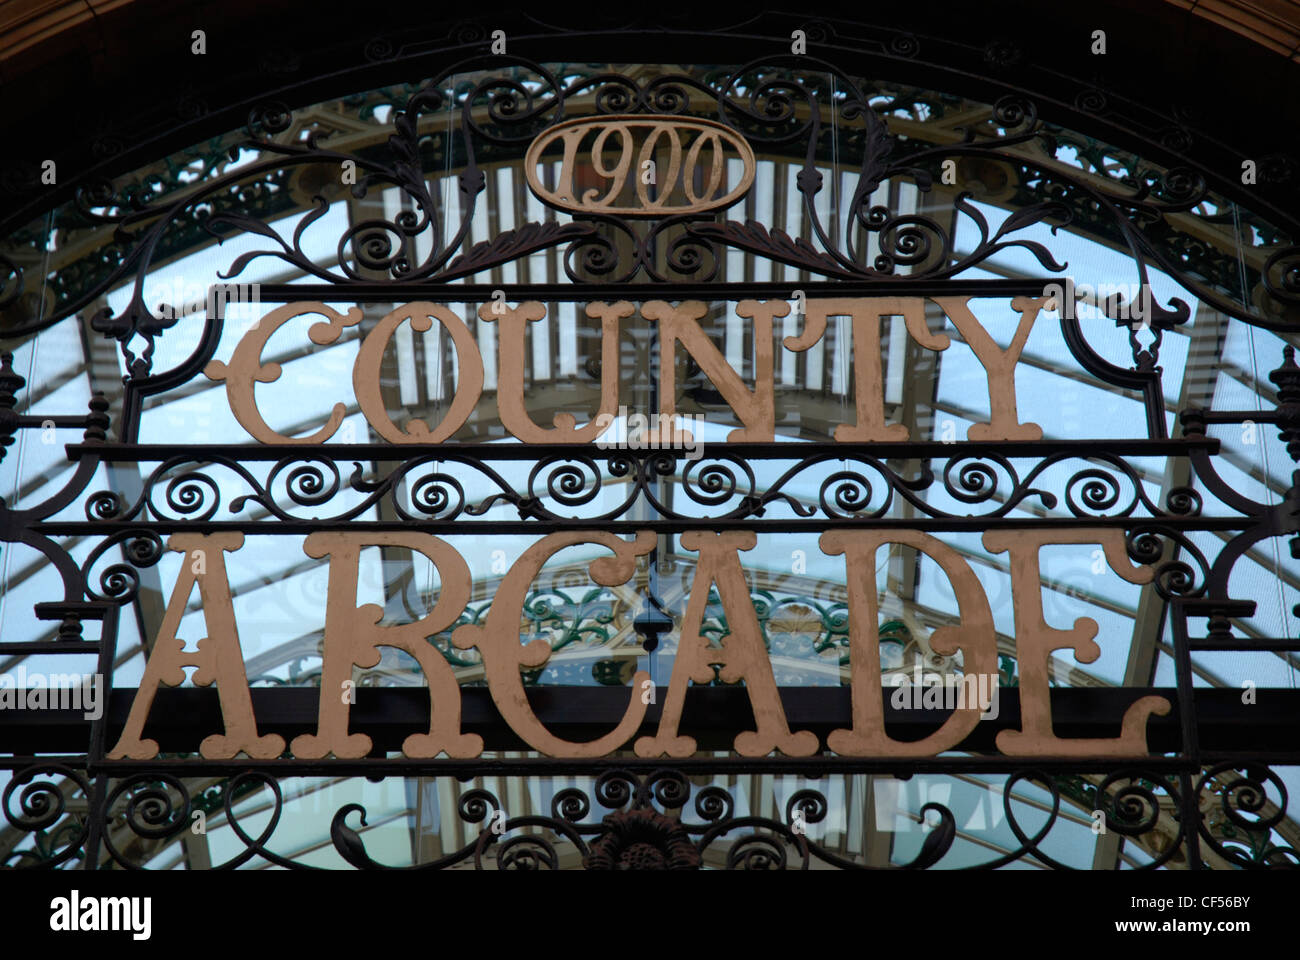 Close up of the Victoria Quarter County Arcade sign in Leeds. - Stock Image